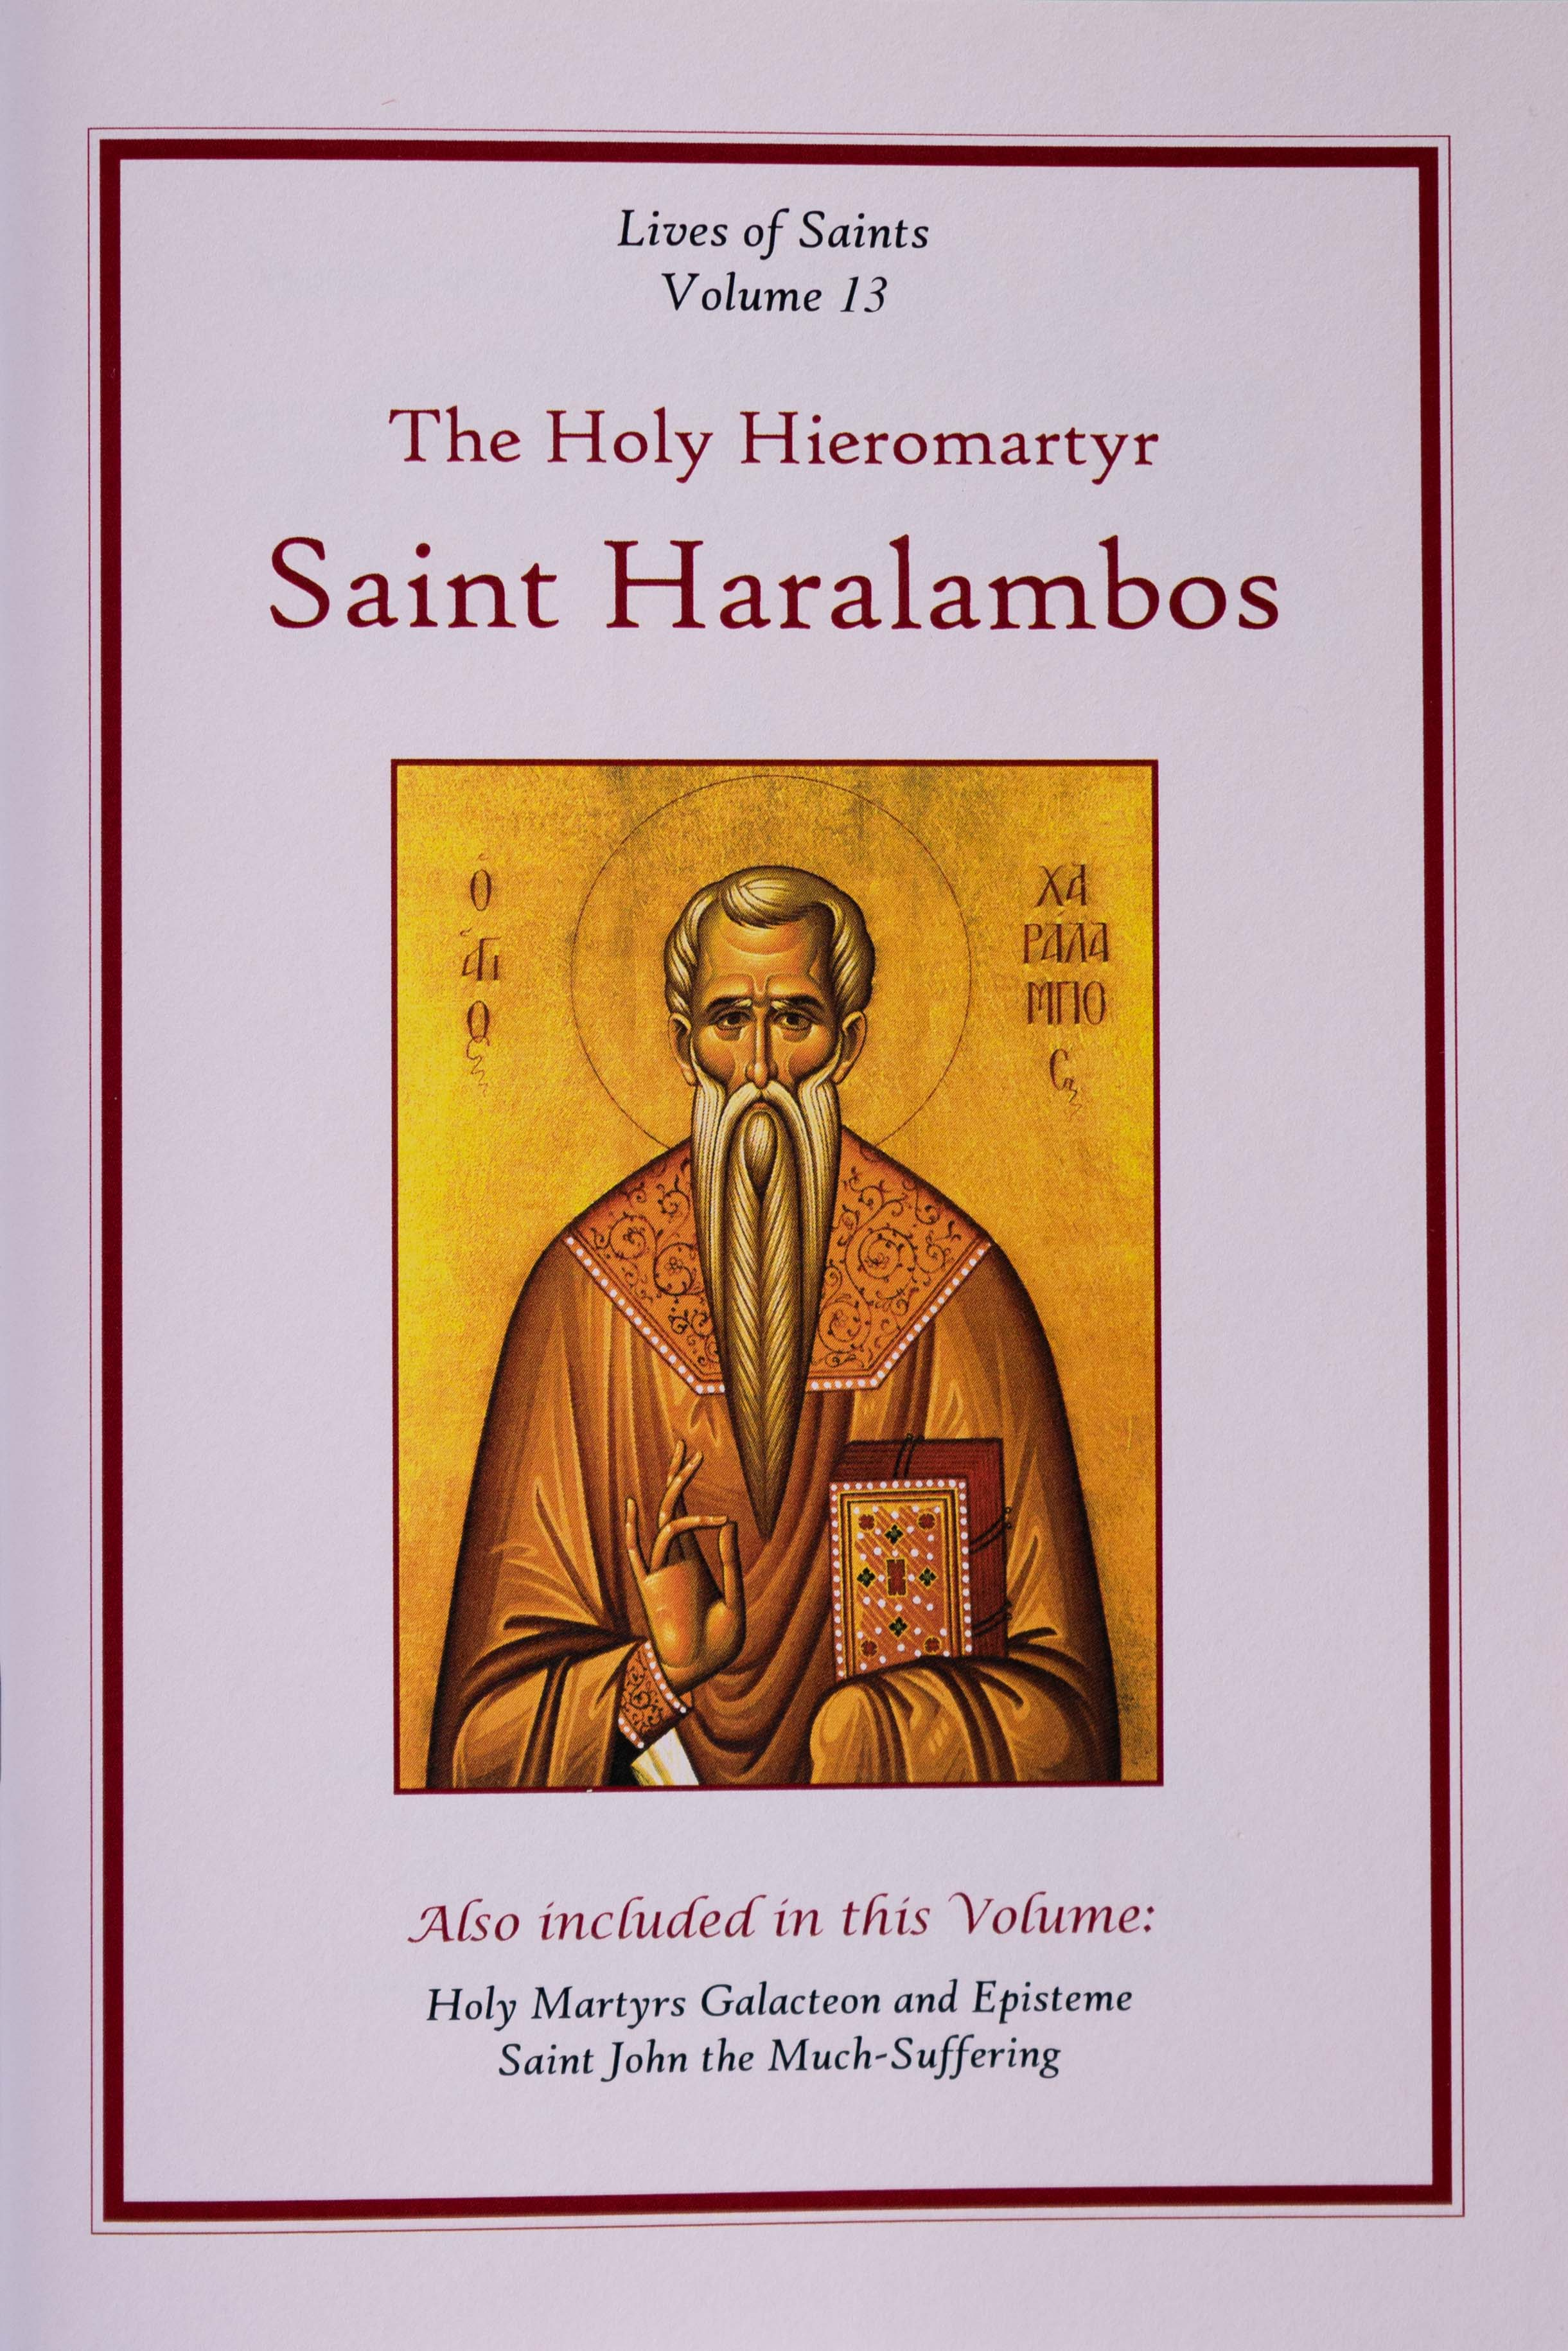 Lives of Saints Vol. 13: The Holy Hieromartyr Saint Haralambos